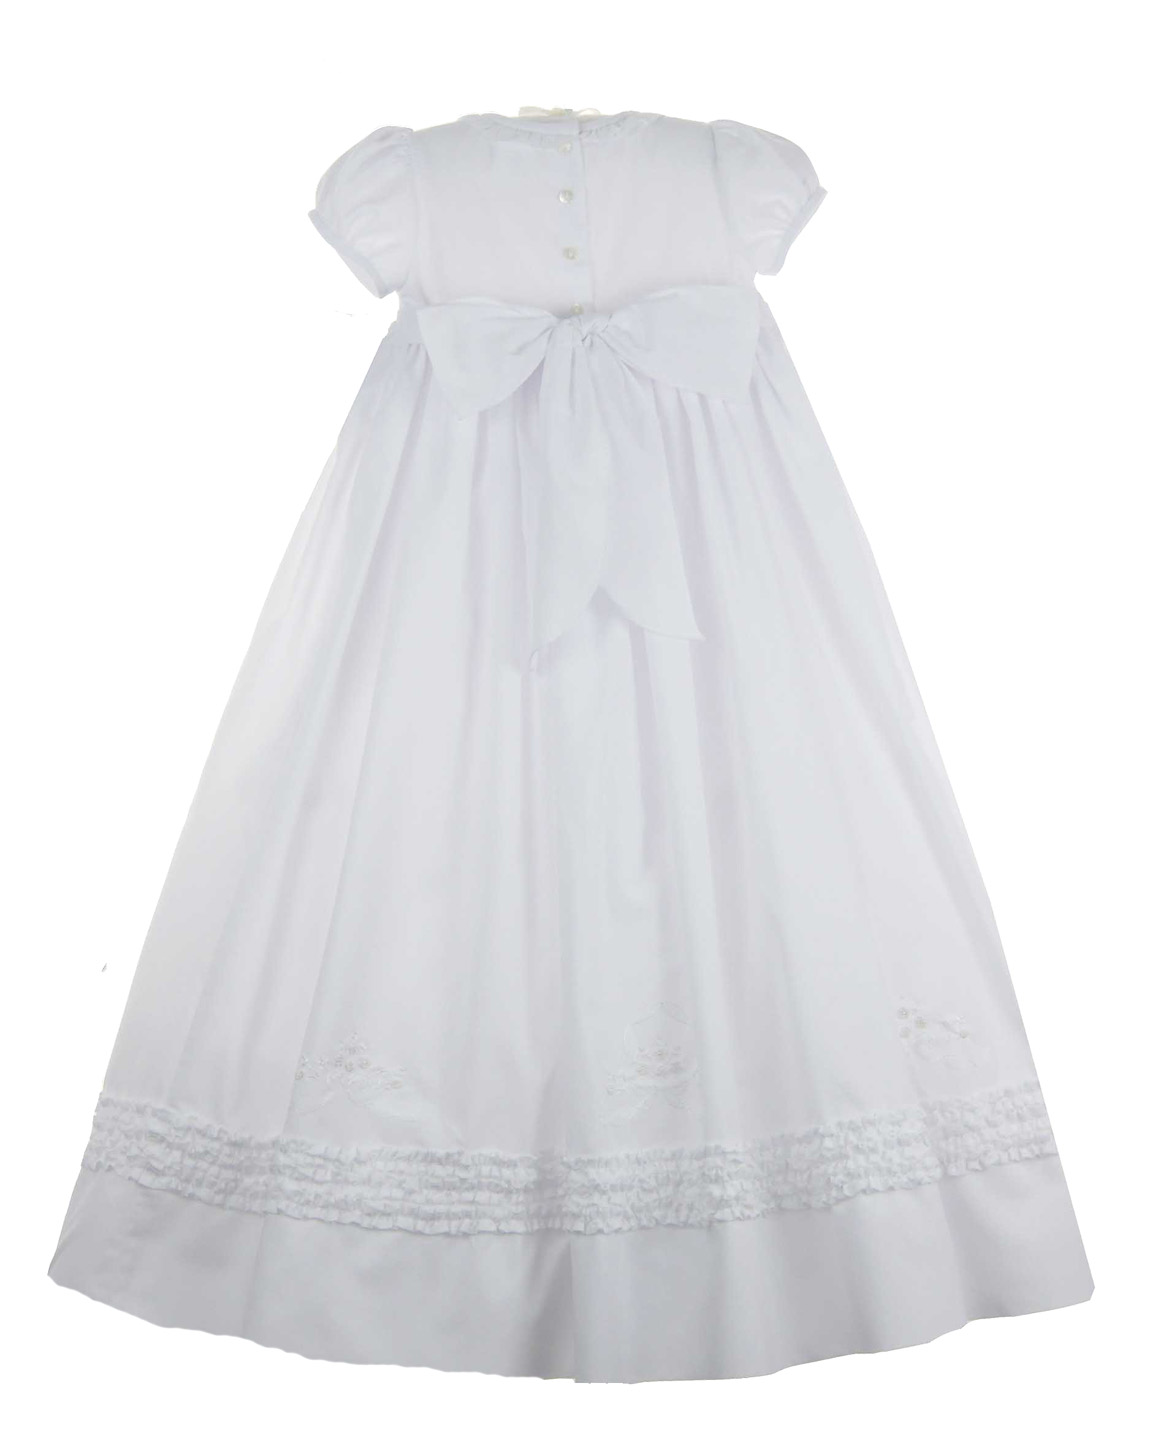 Sarah Louise white batiste smocked christening gown with ruffles and ...